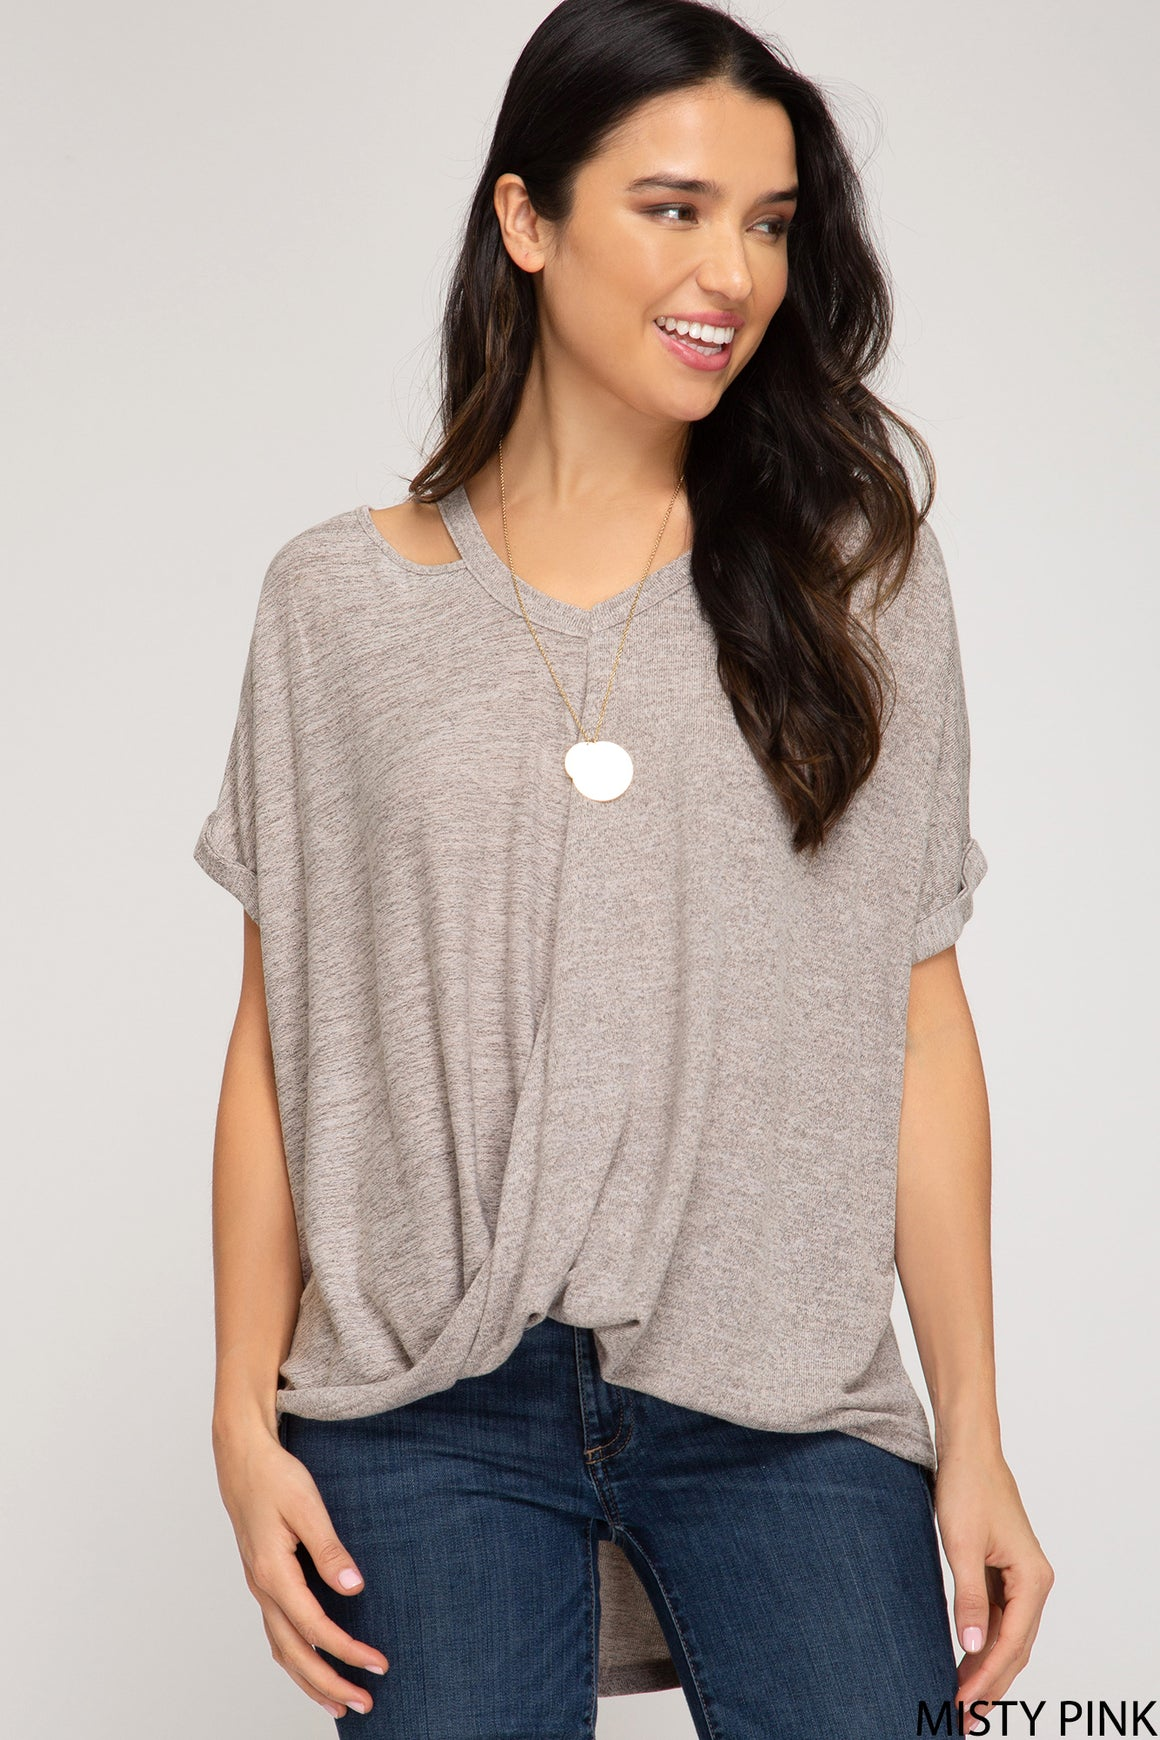 Short Sleeve Top With Cut Out Details!